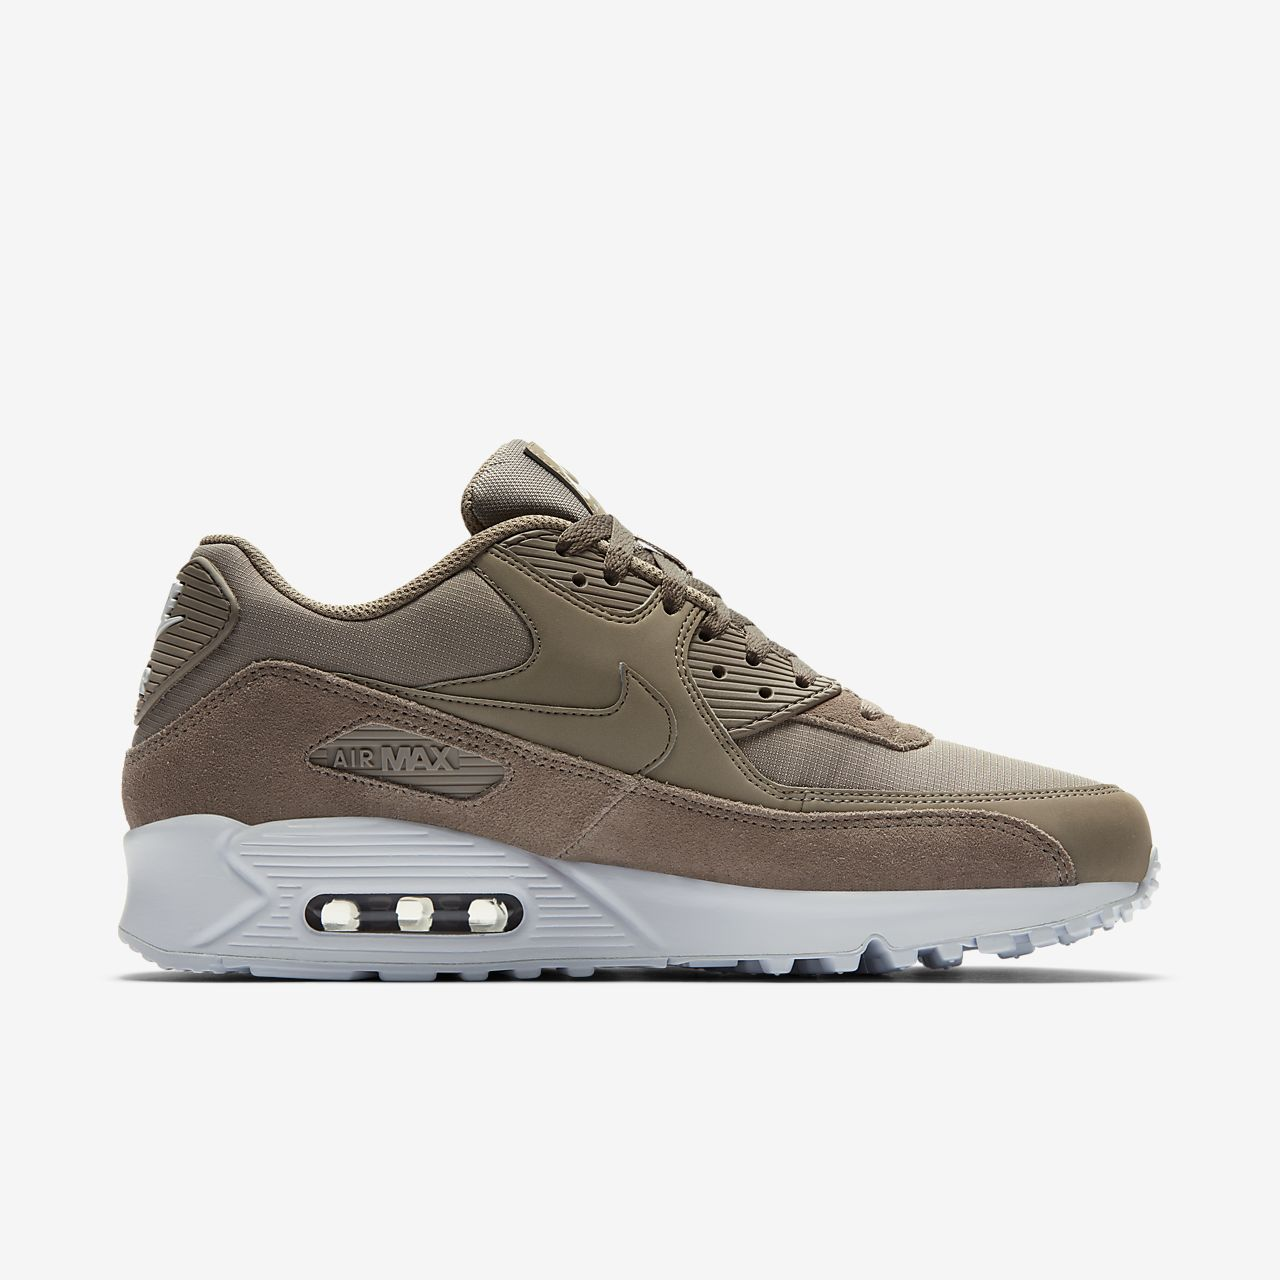 Chaussures Nike Air Max 90 Essential blanches homme sHI0yQk